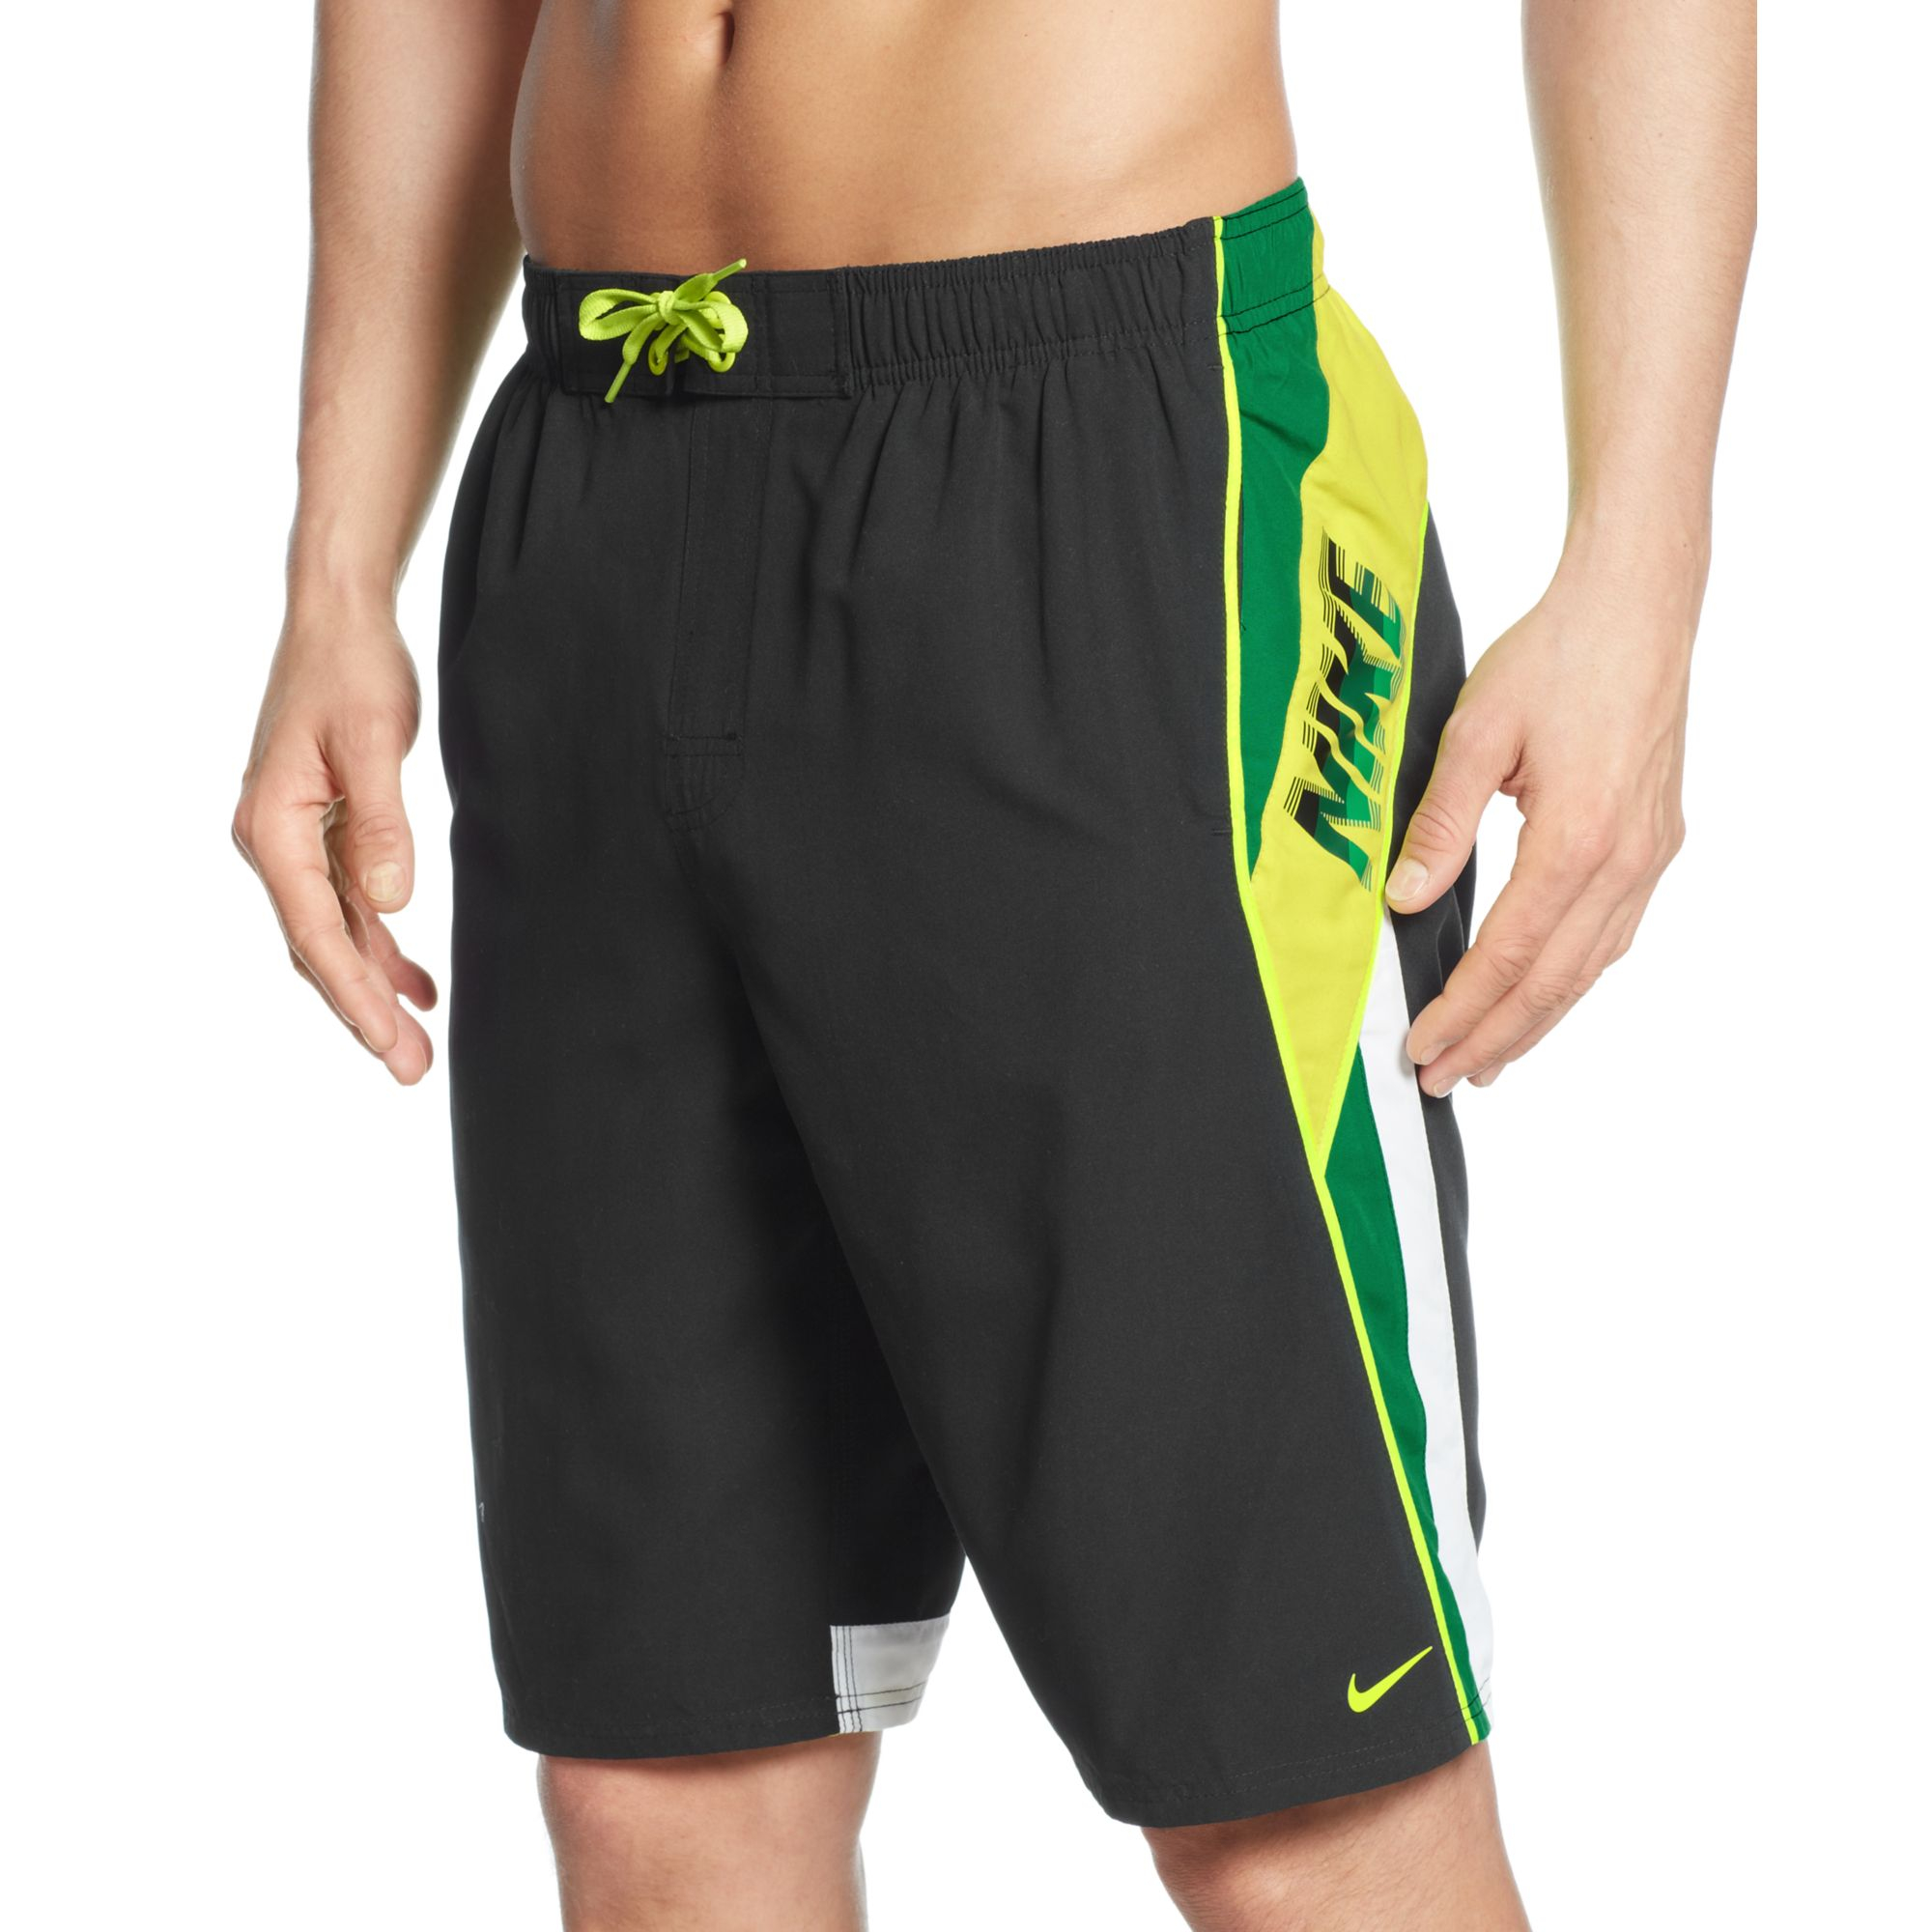 b33466d6d1 Nike Surge 11 Volley Swim Trunks in Green for Men - Lyst